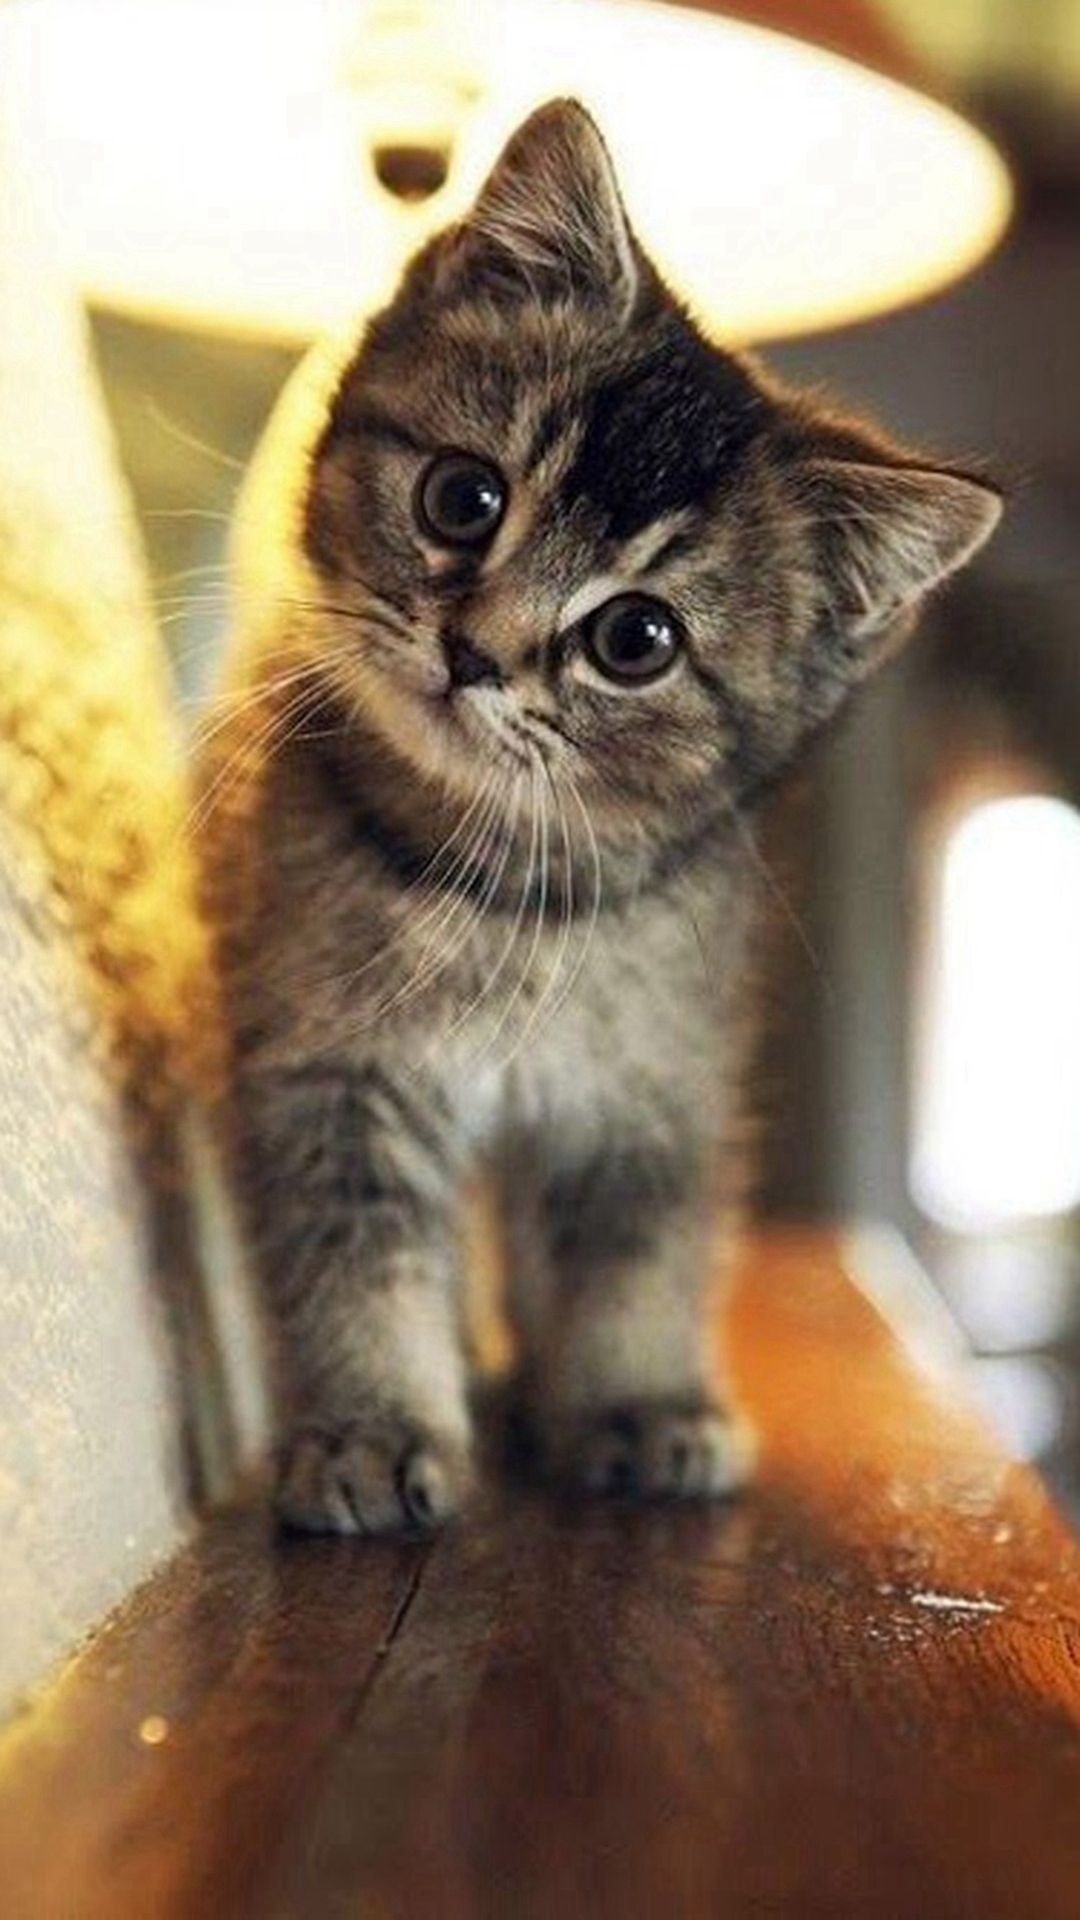 cute cat wallpaper iphone best iphone wallpaper